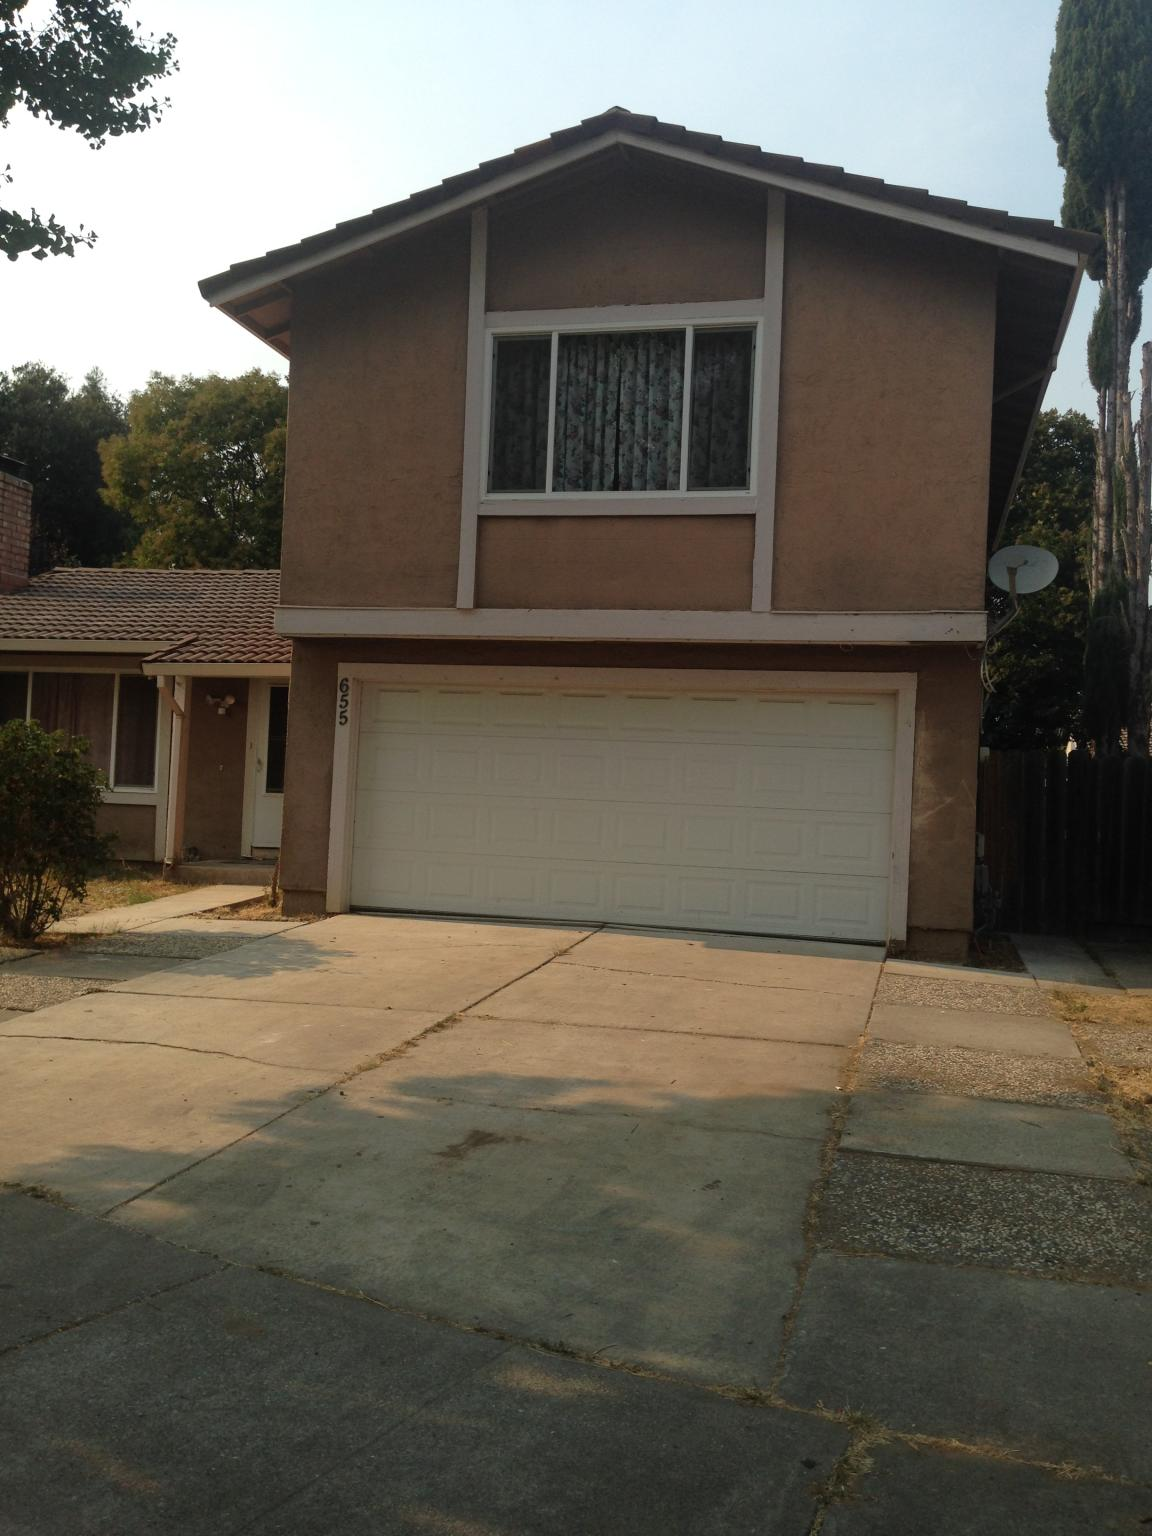 655 Glenview Ct, Gilroy, CA 95020 For Rent   Trulia